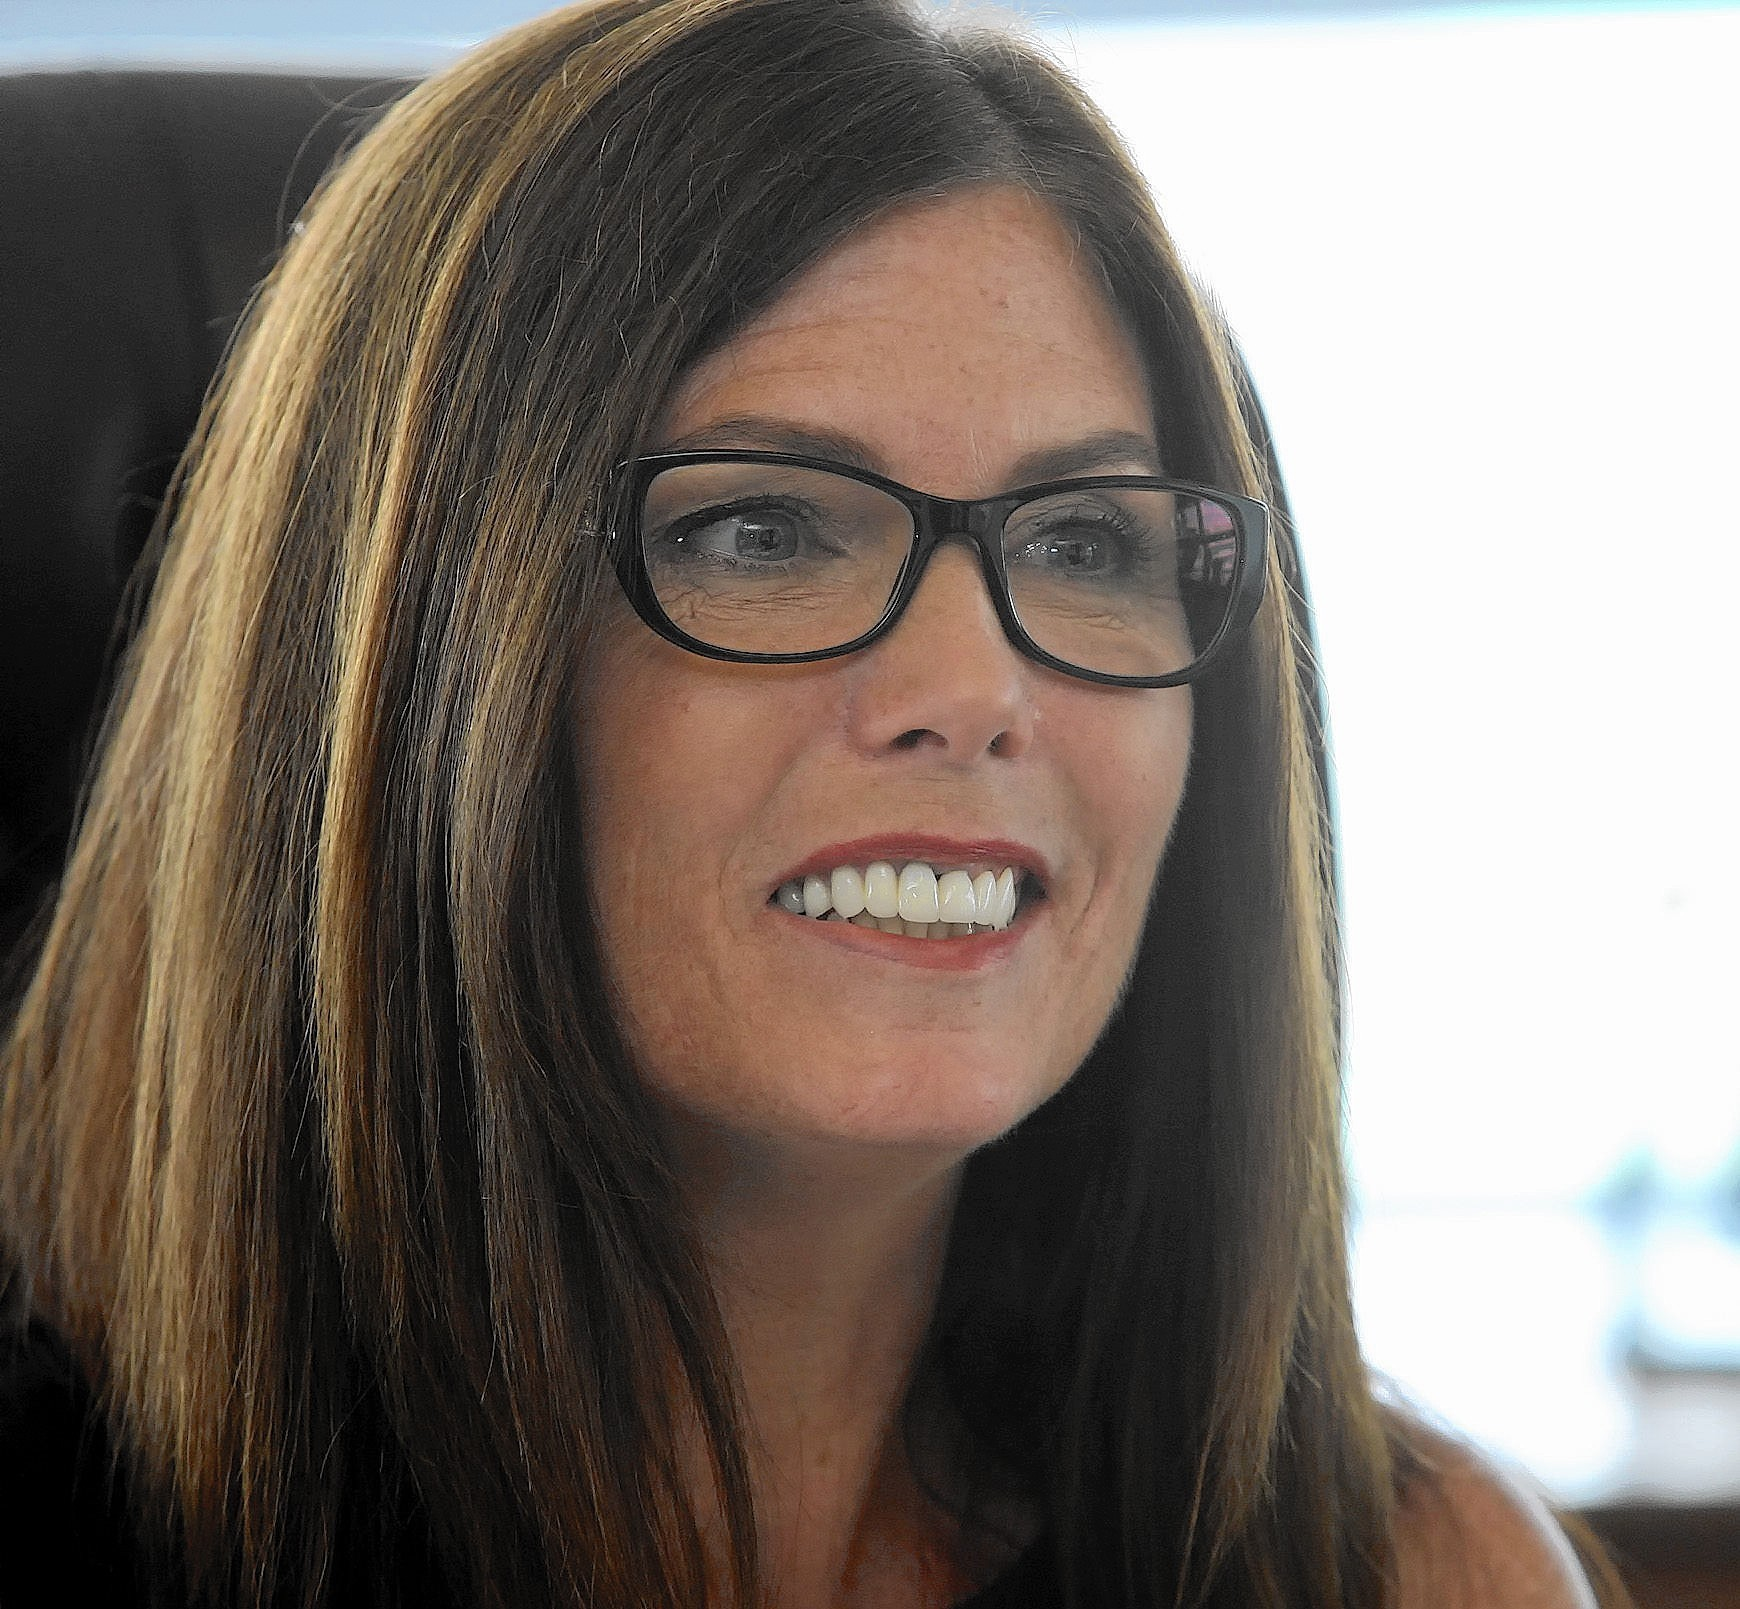 Have email scandal kathleen kane porn your place